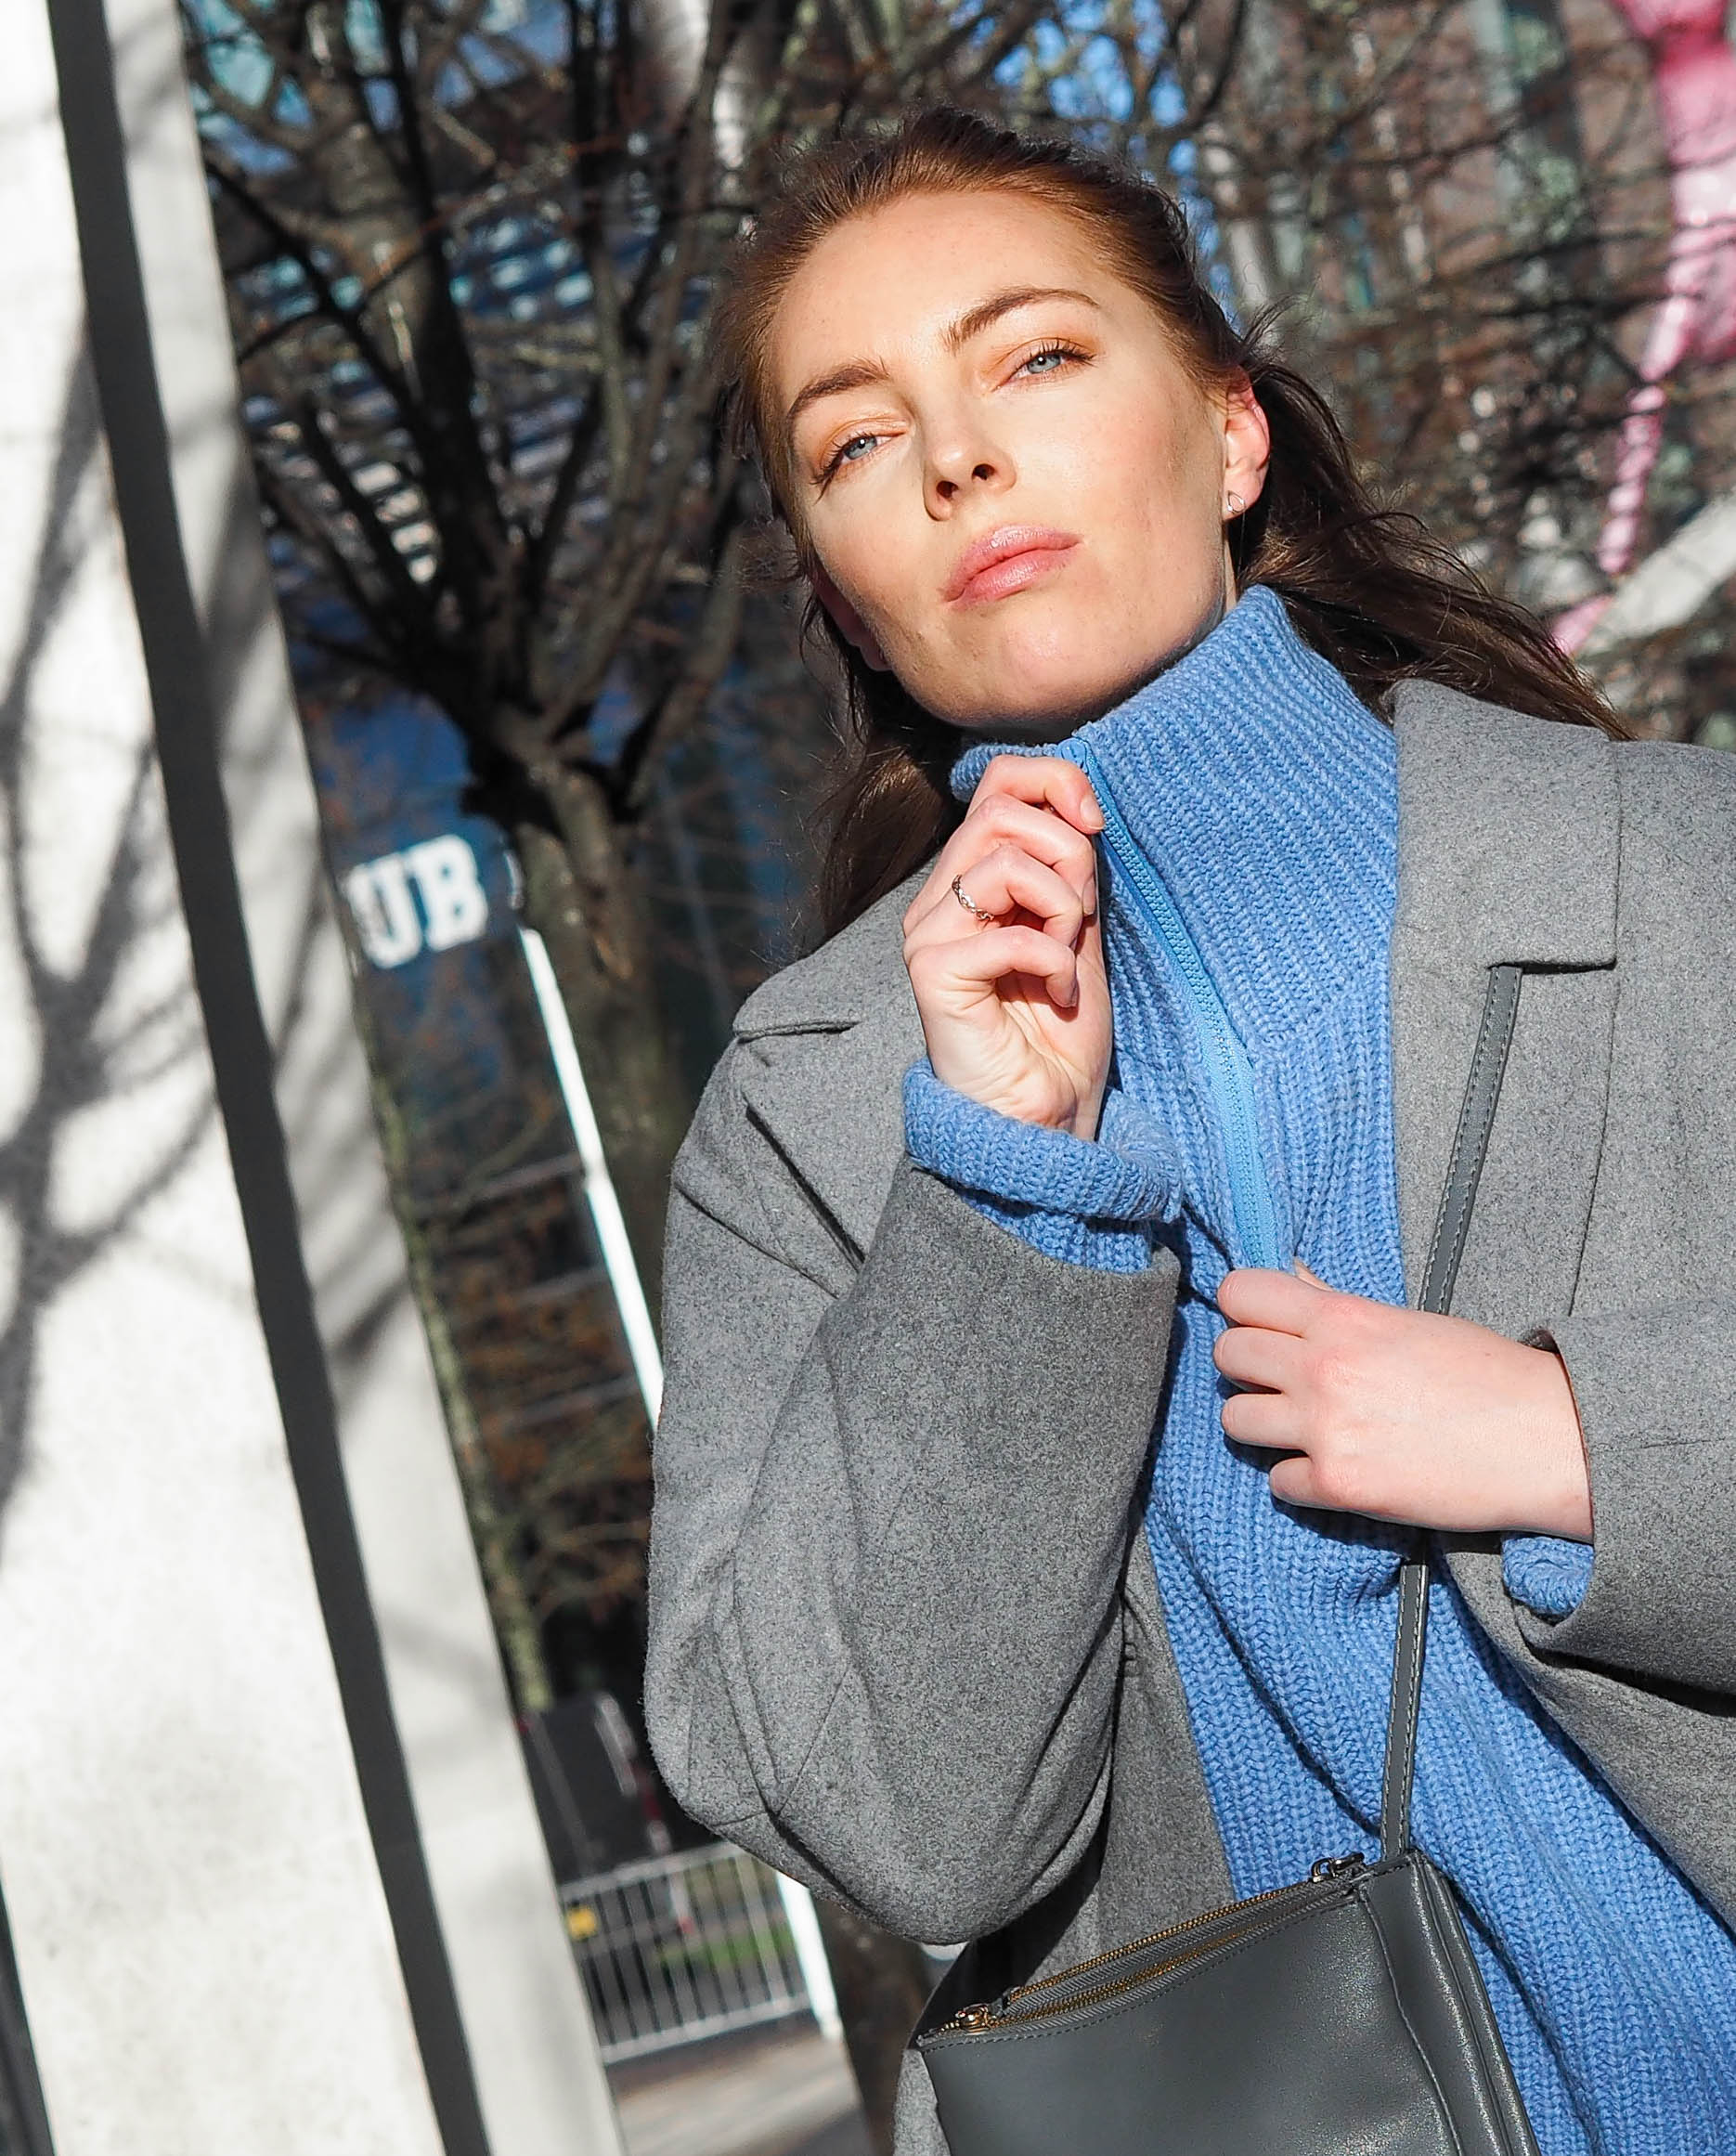 girl with blue eyes wearing blue knit and grey wool coat